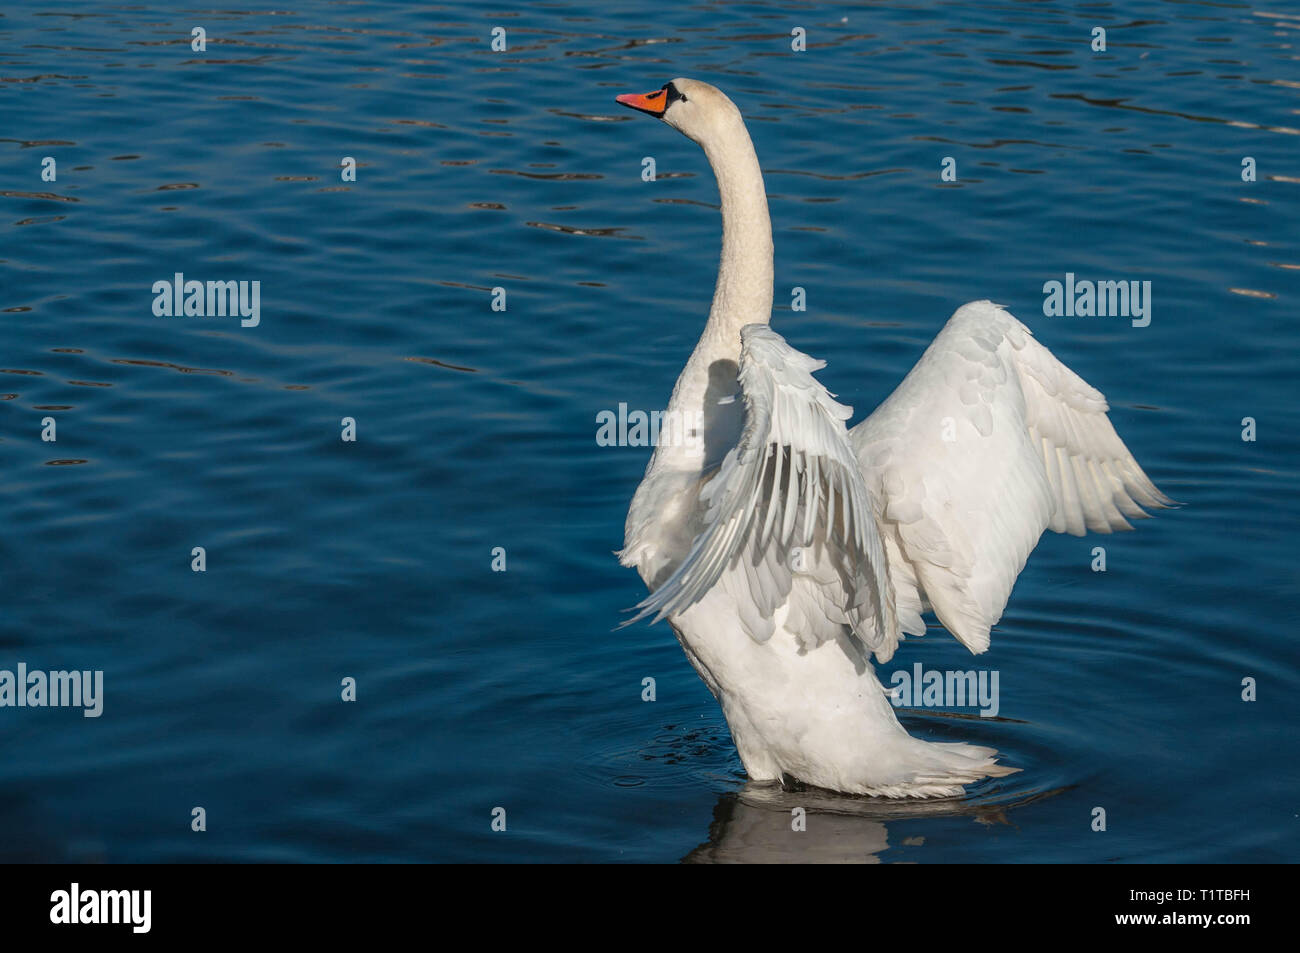 White swan flapping its wings on a river - Stock Image